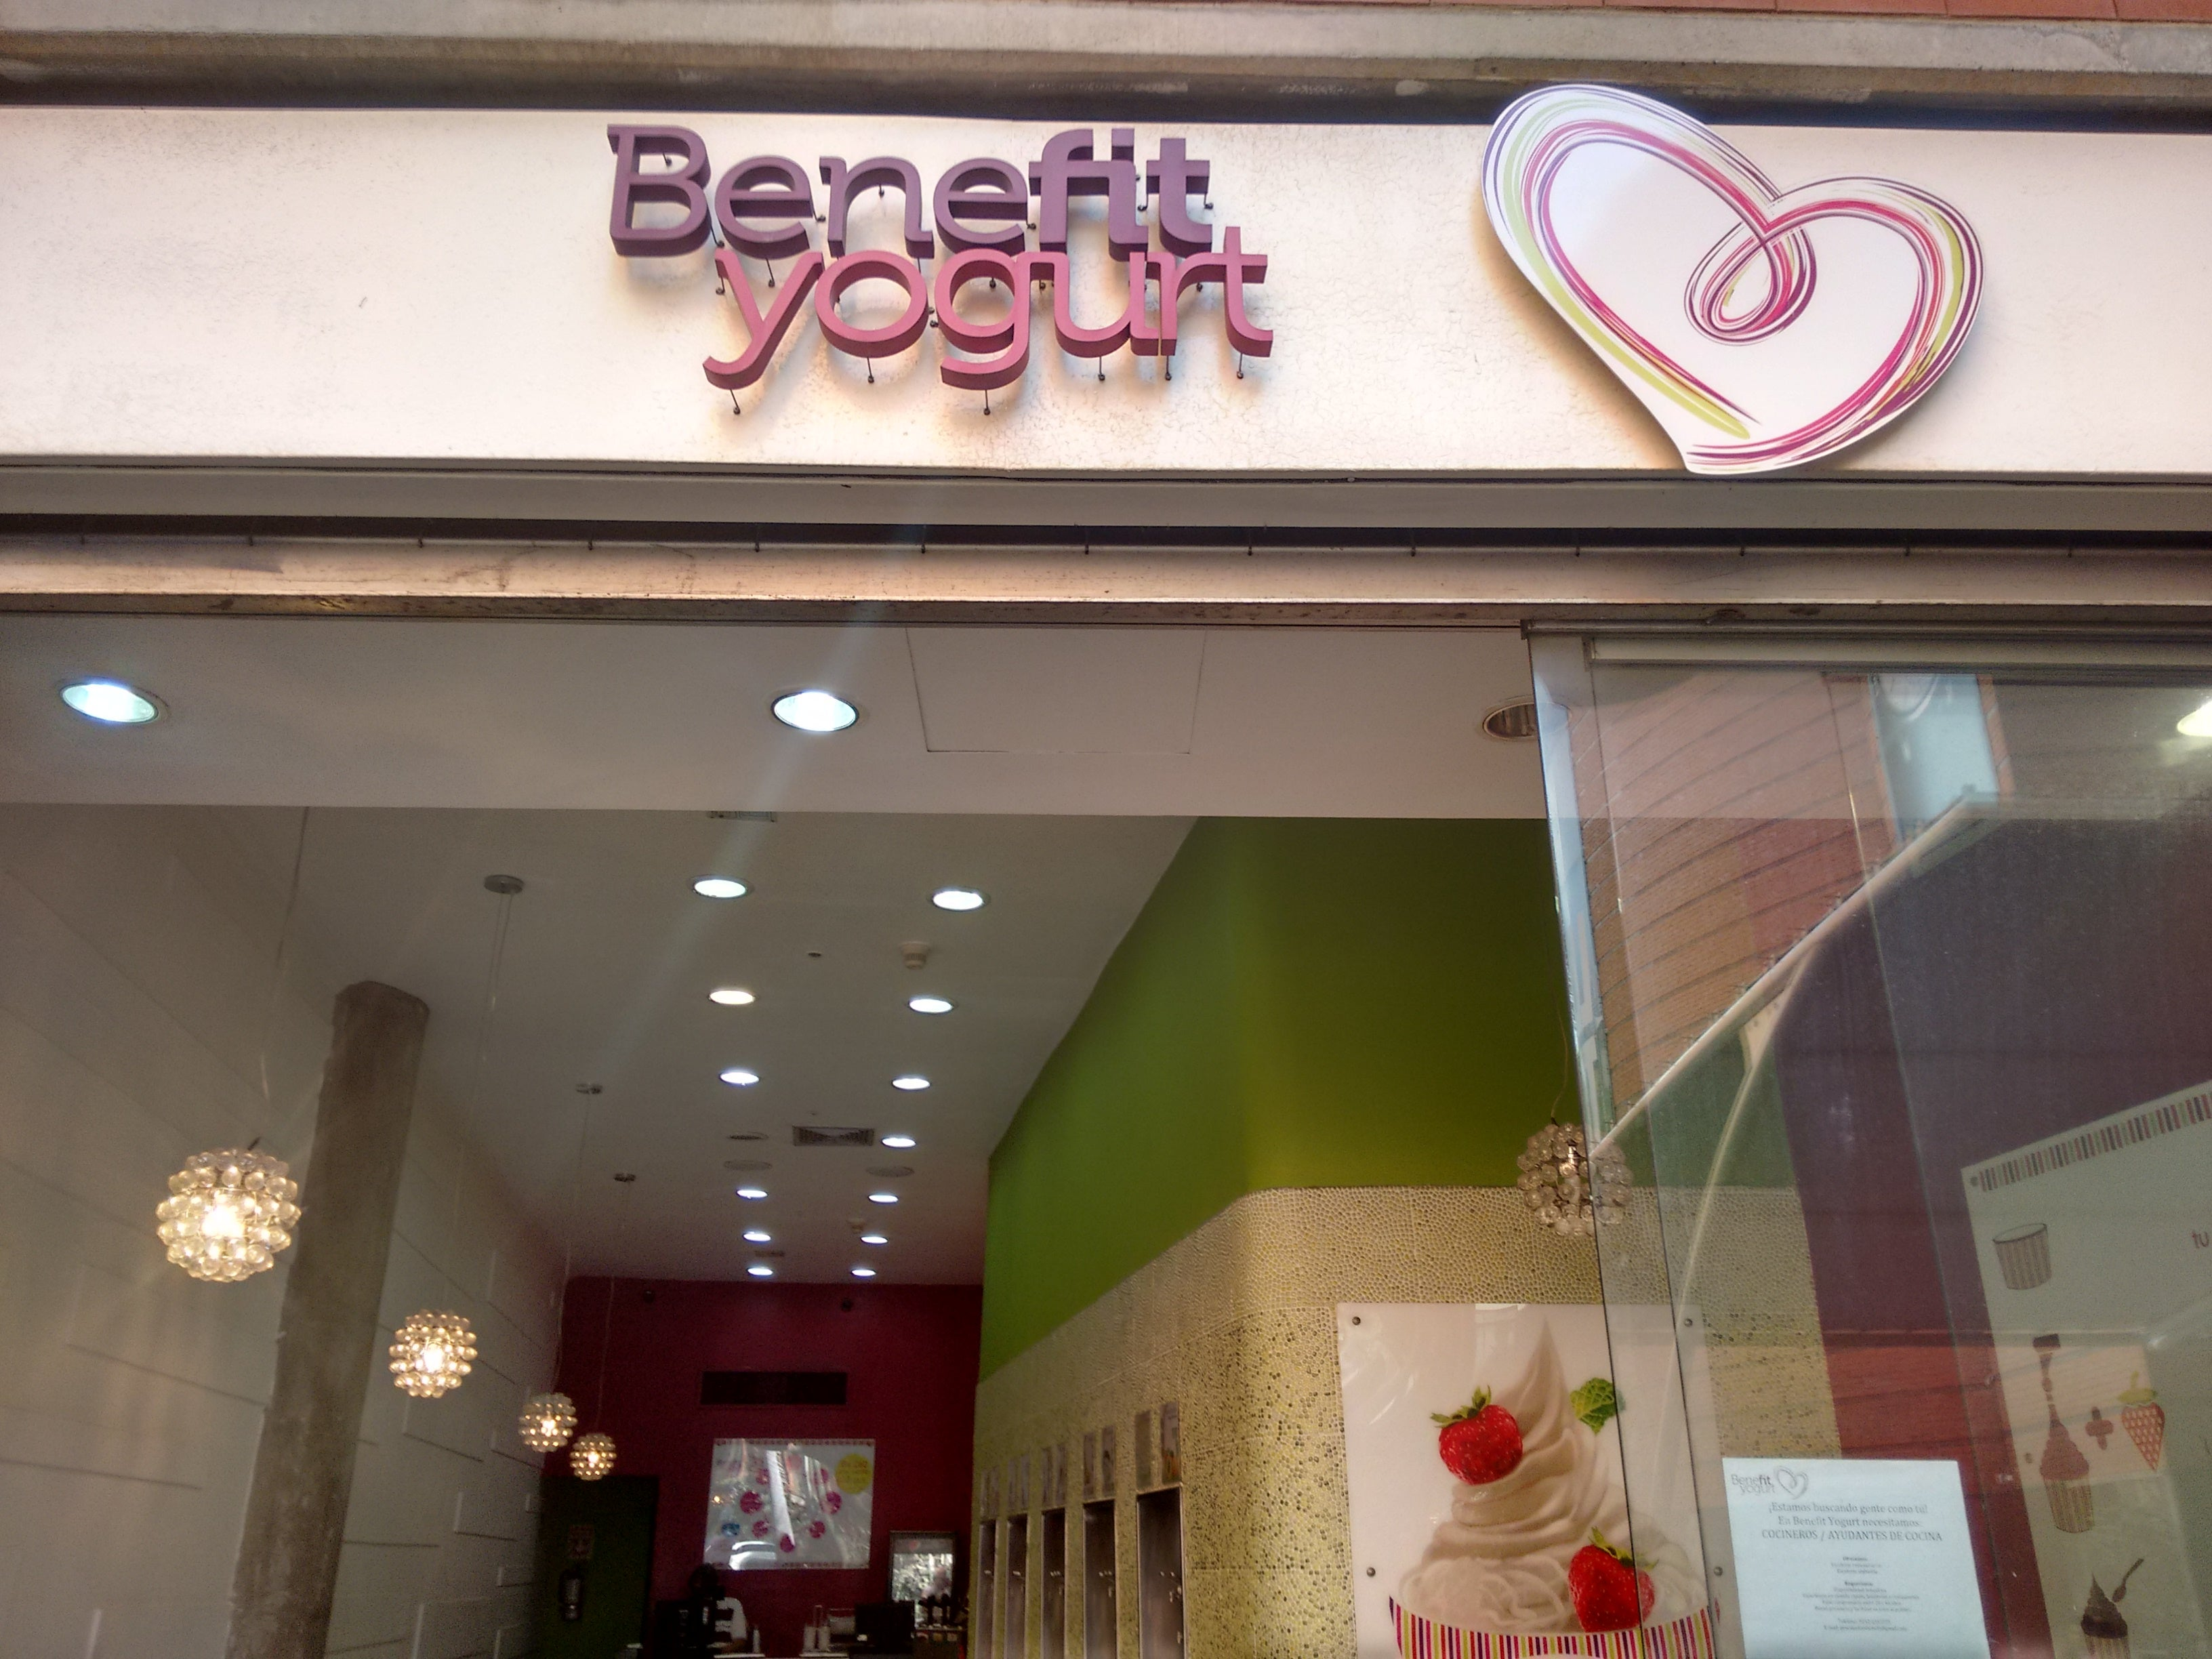 Furniture in Benefil Yogurt